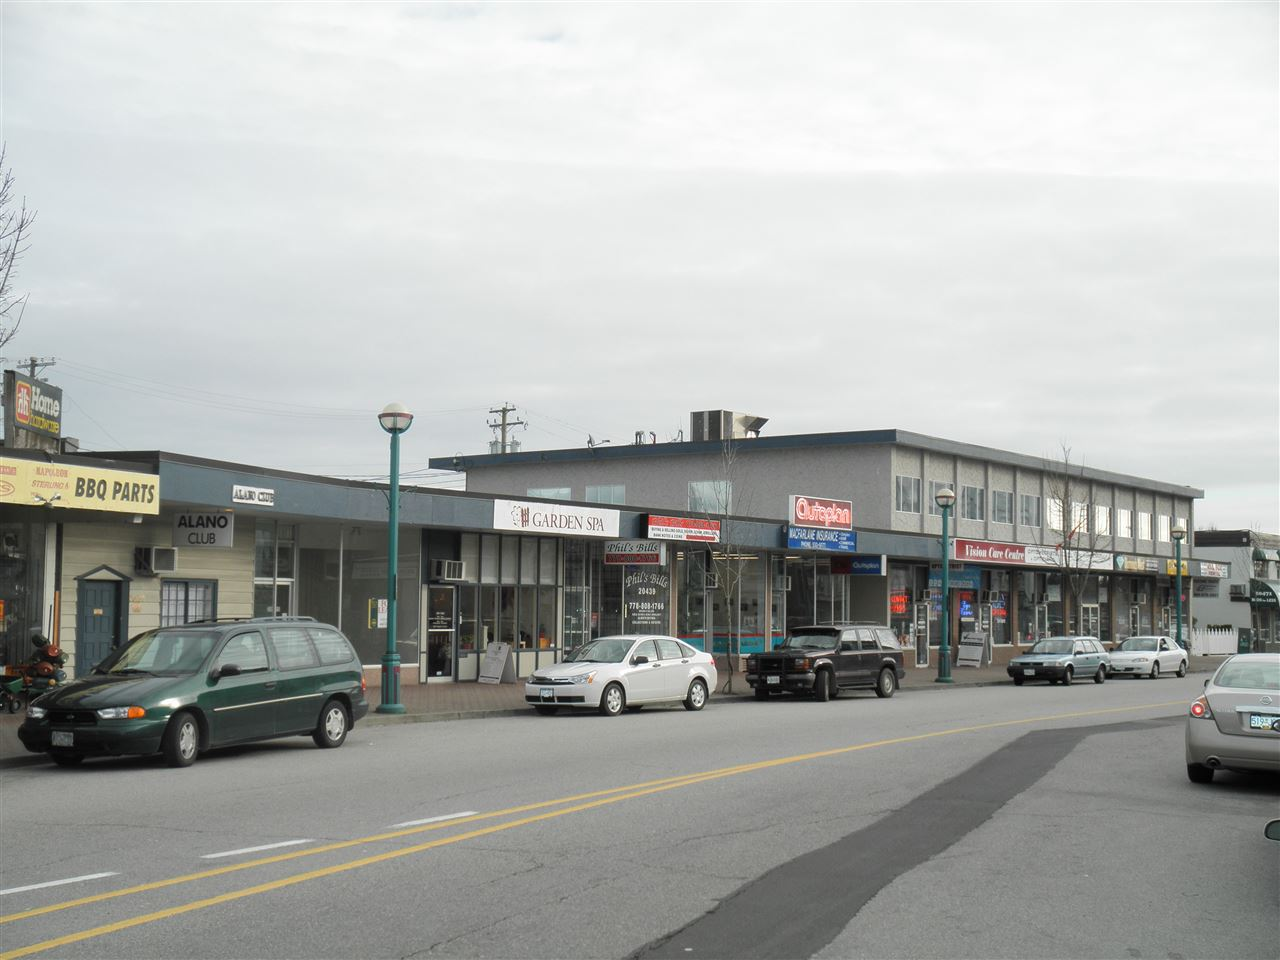 """FOR LEASE"" Commercial Retail Space with Store front. C-1 Zoning. 1,699 SF, Base rent at $13/sf/annum, Additional rent at $6.26/sf/annum, includes 3 parking stall."